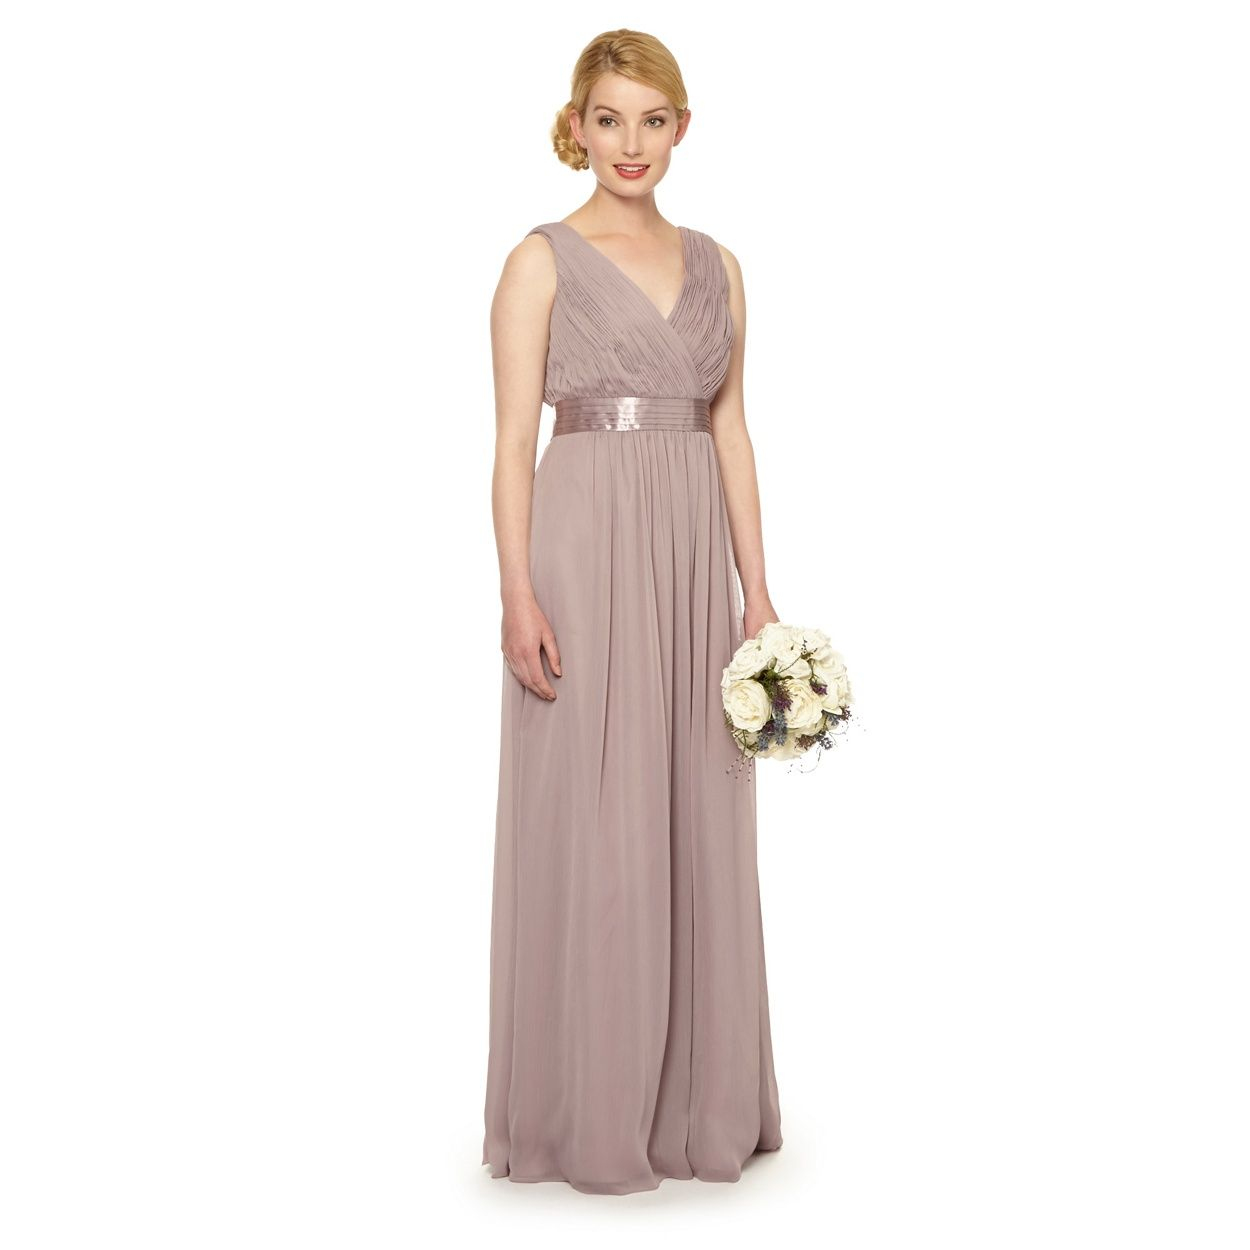 Debut mauve ruched maxi dress at debenhams for ngai mun debut mauve ruched maxi dress at debenhams ombrellifo Image collections